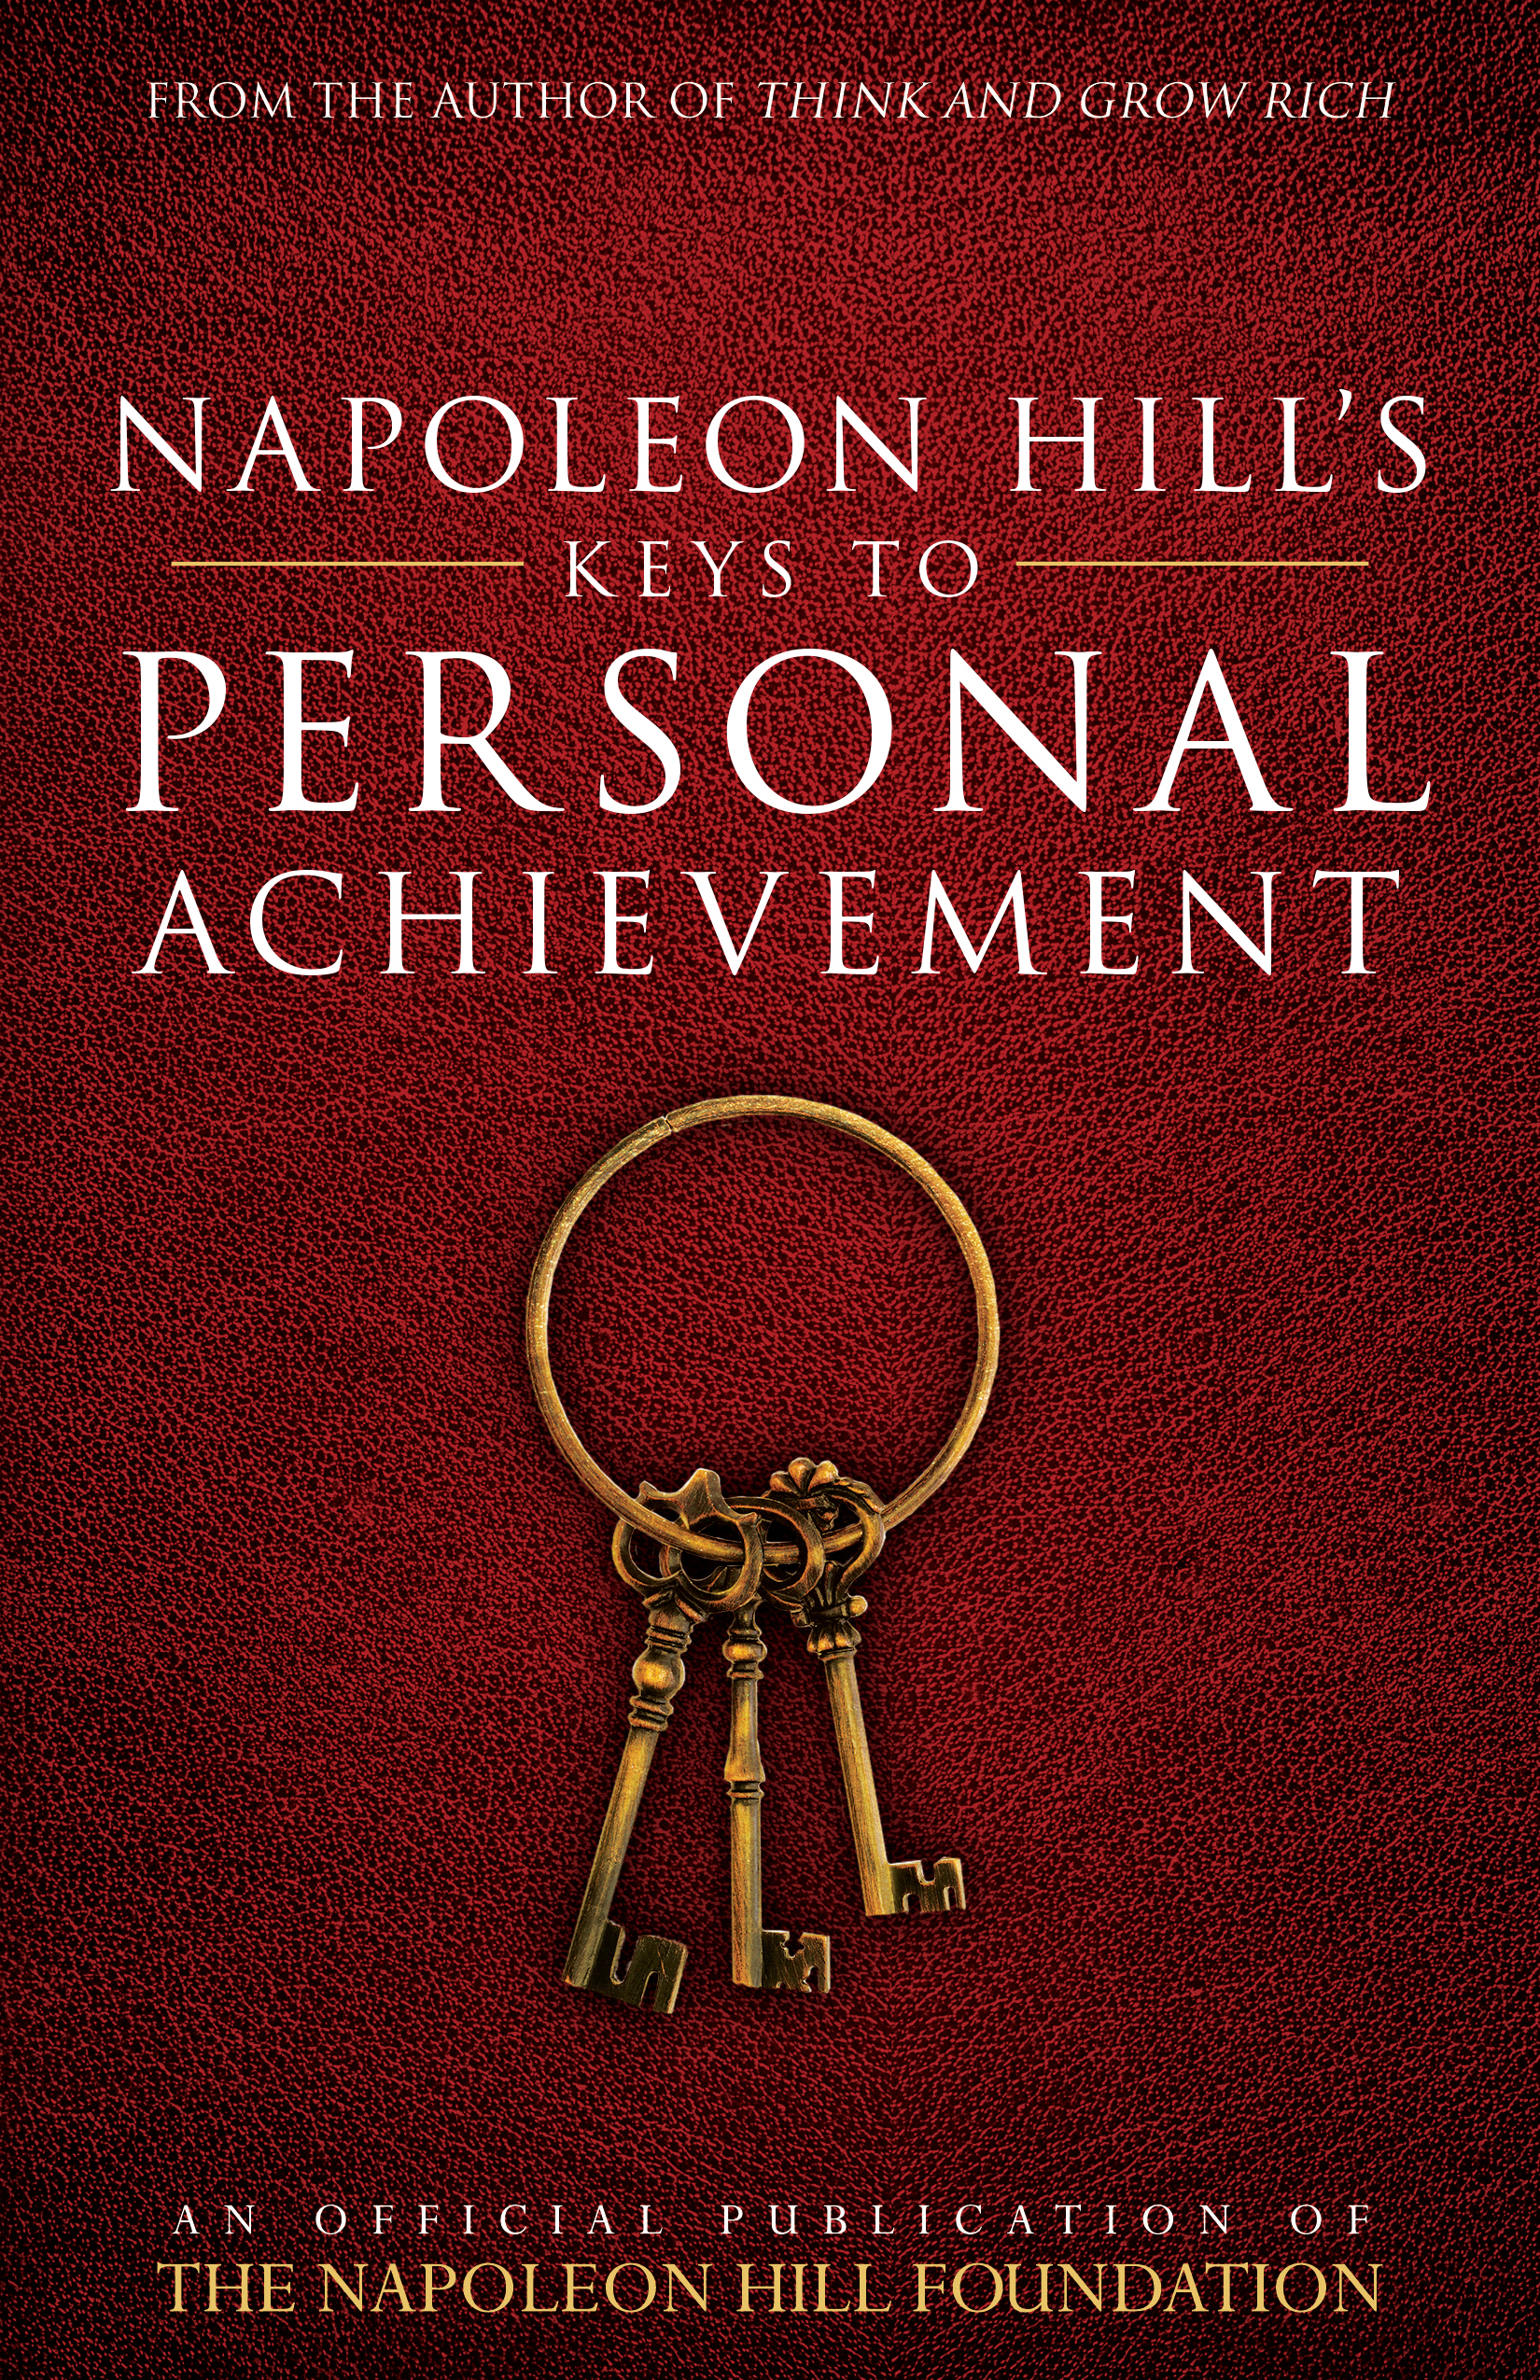 Napoleon Hill's Keys to Personal Achievement - Napoleon Hill